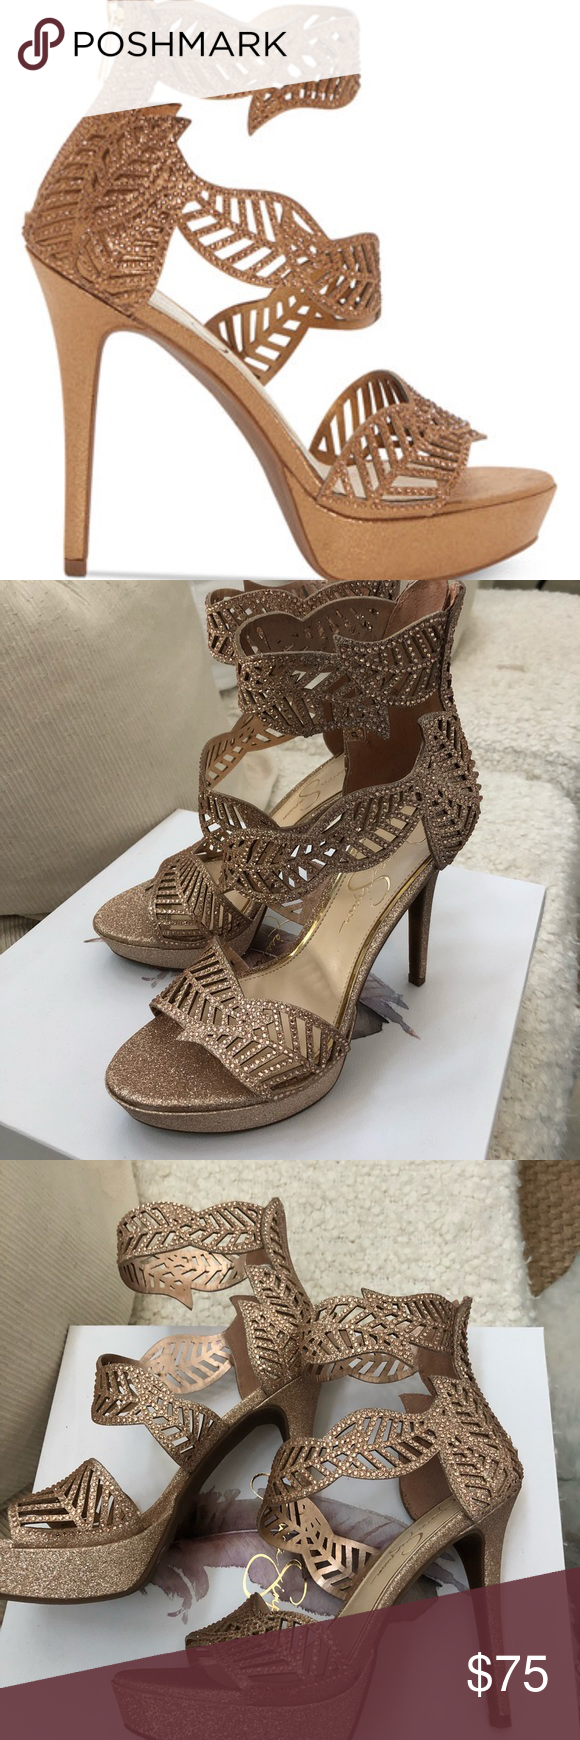 974808d914b NIB Jessica Simpson Bonilynn Moët glitter. 7.5 NIB Jessica Simpson Bonilynn  heel. Size 7.5. GORGEOUS!!!! No trades and only reasonable offers  considered.